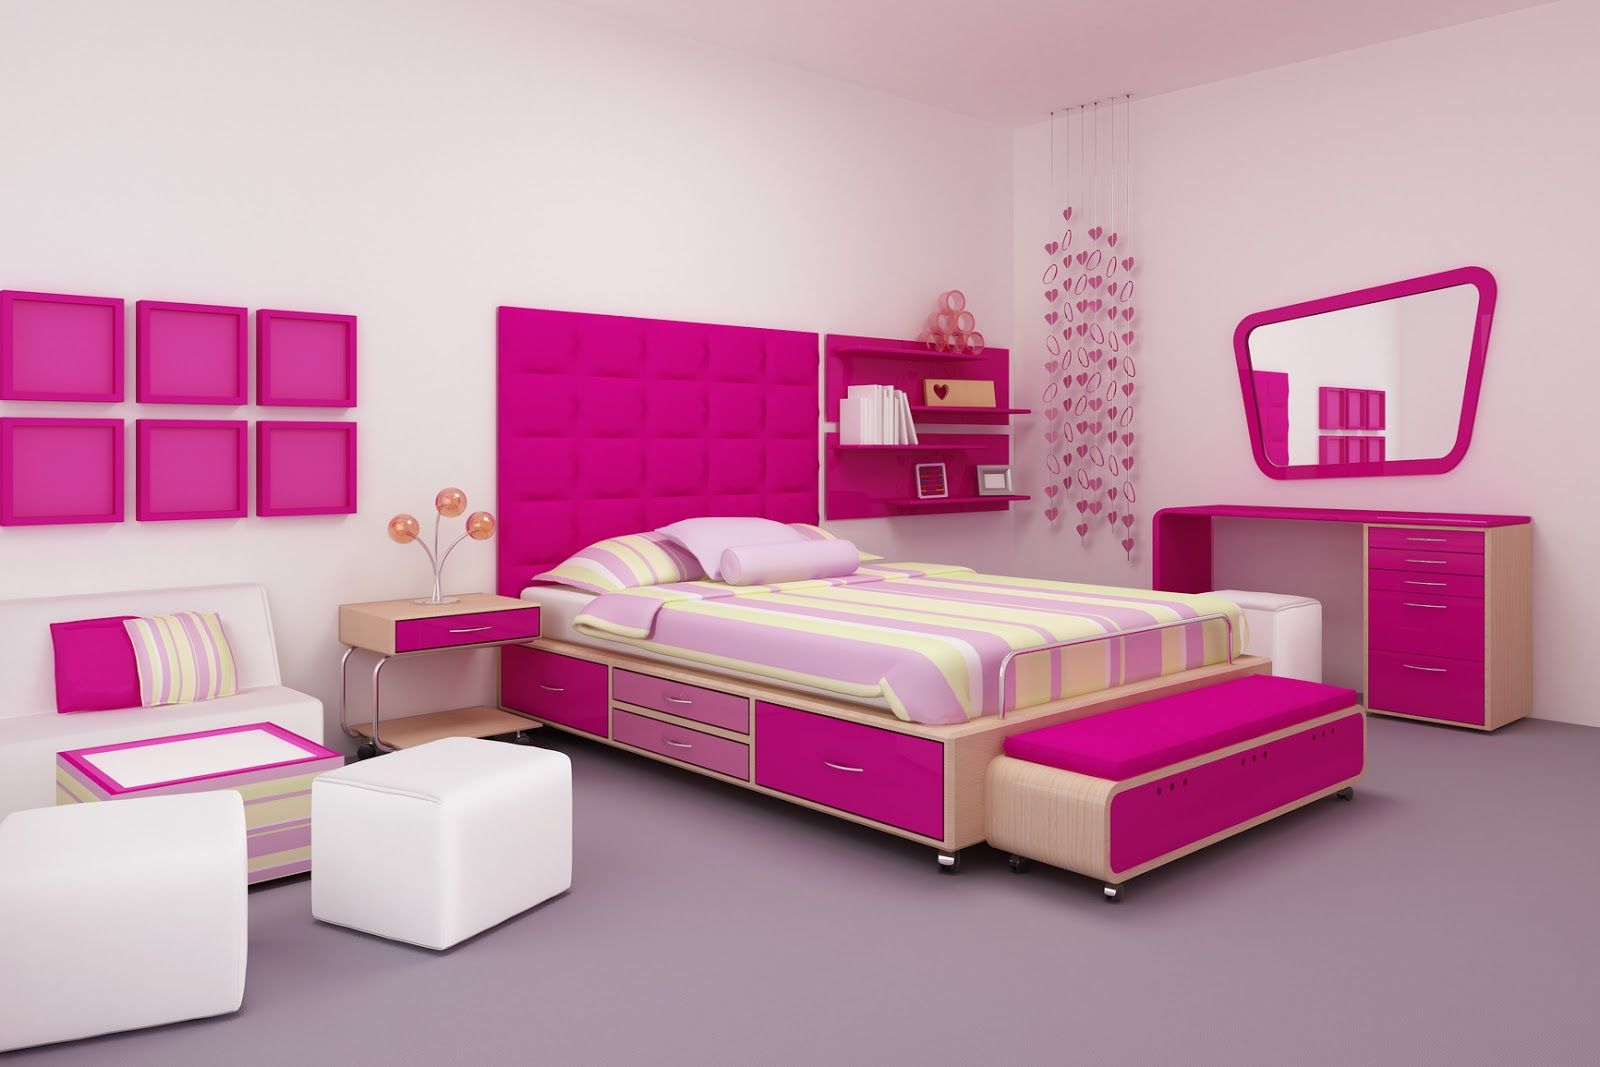 Charming Design Your Own Room In Purple Color With Pink Accent With Modern  Modular Style Ideas For Inspiration